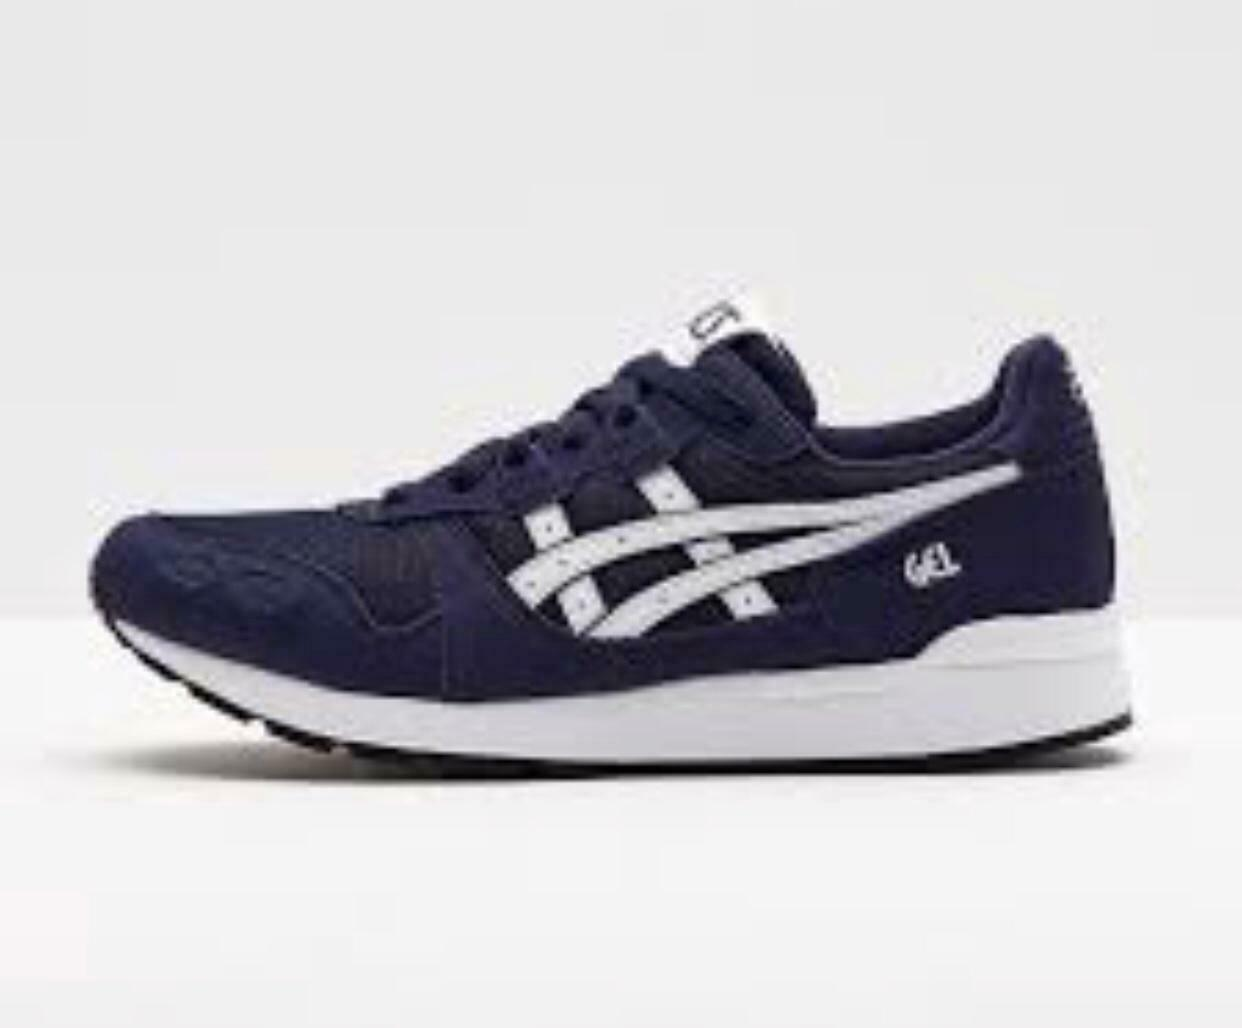 Mens Size 9.5 US ASICS TIGER GEL-LYTE 1193A026-400 NEW IN BOX Peacoat  White